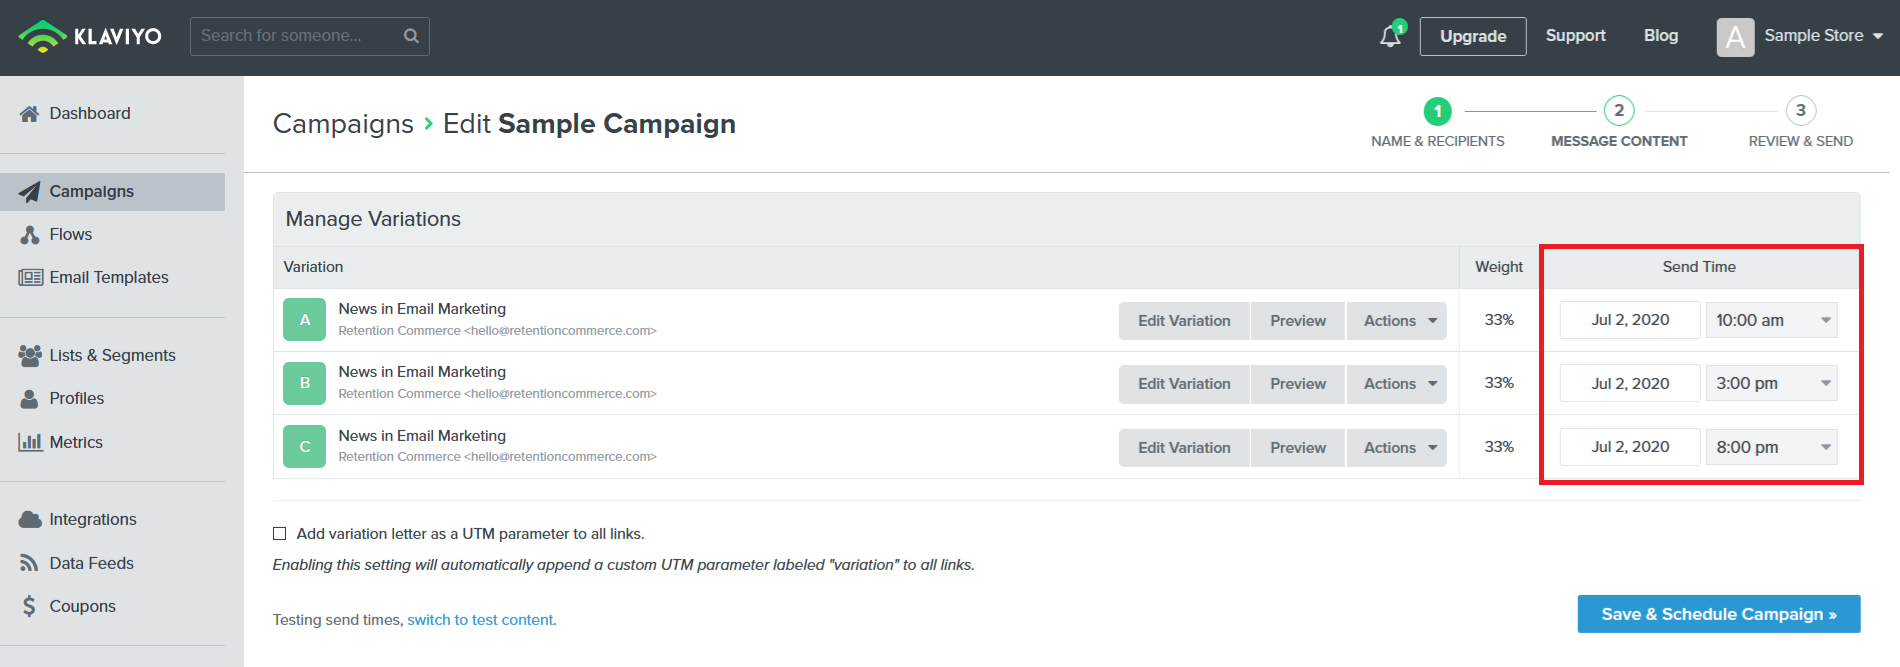 how-to-a-b-test-the-sending-time-of-campaigns_5